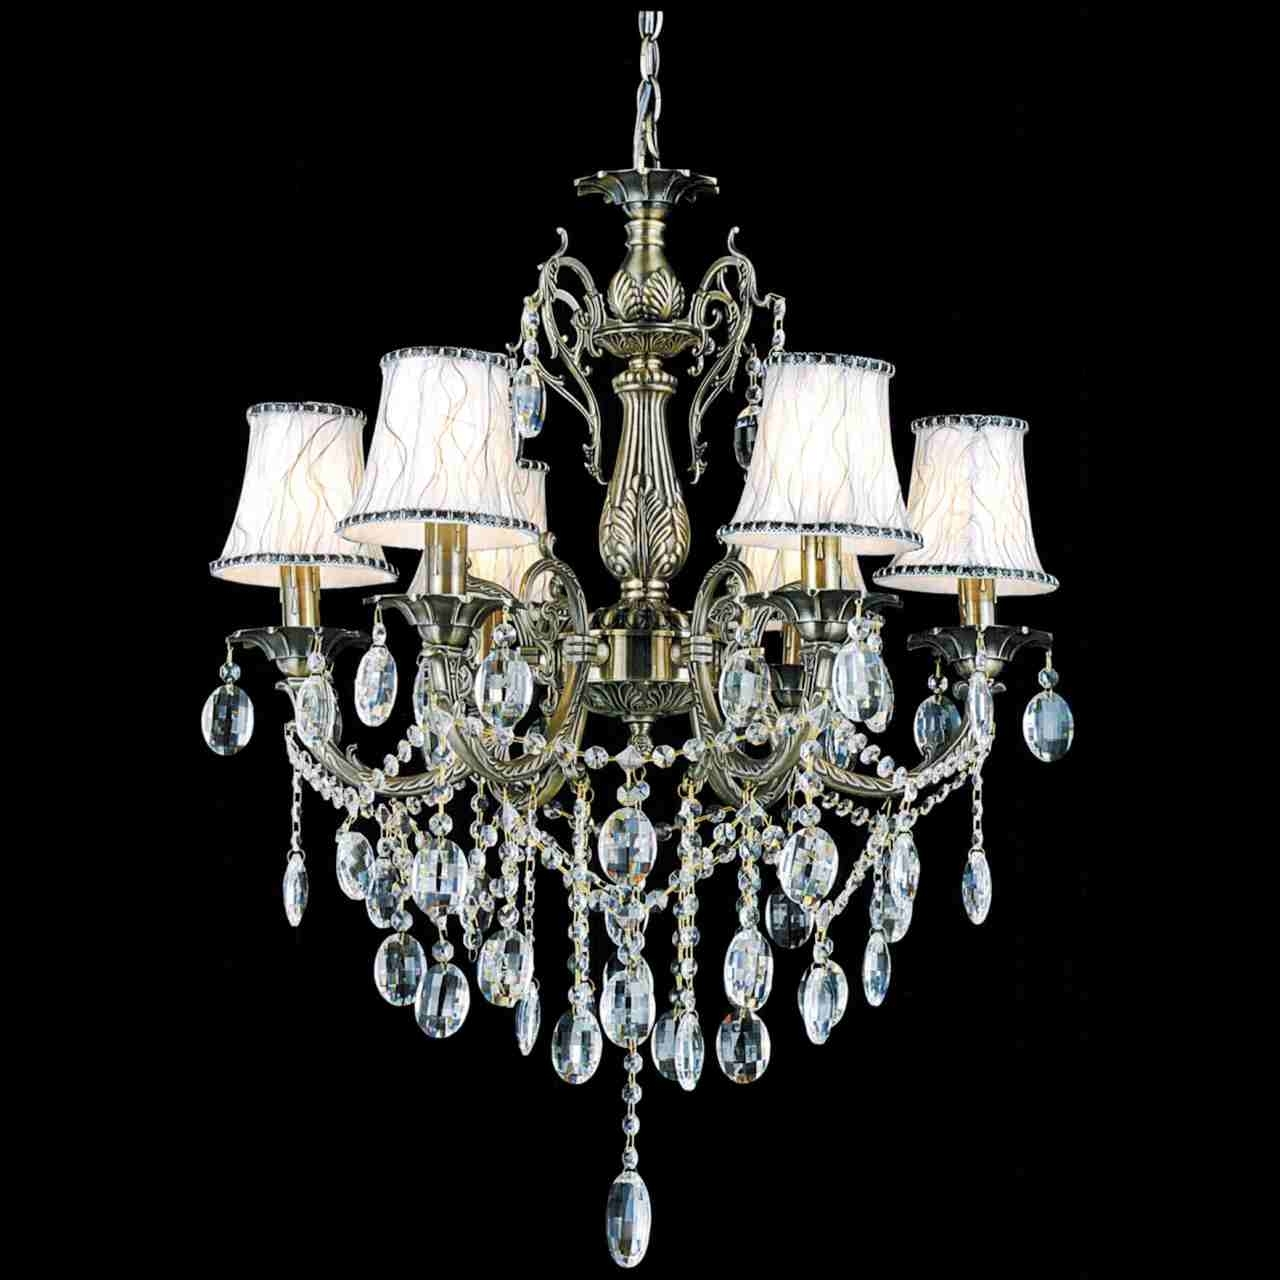 Best And Newest Traditional Brass Chandeliers Inside Brizzo Lighting Stores (View 3 of 20)